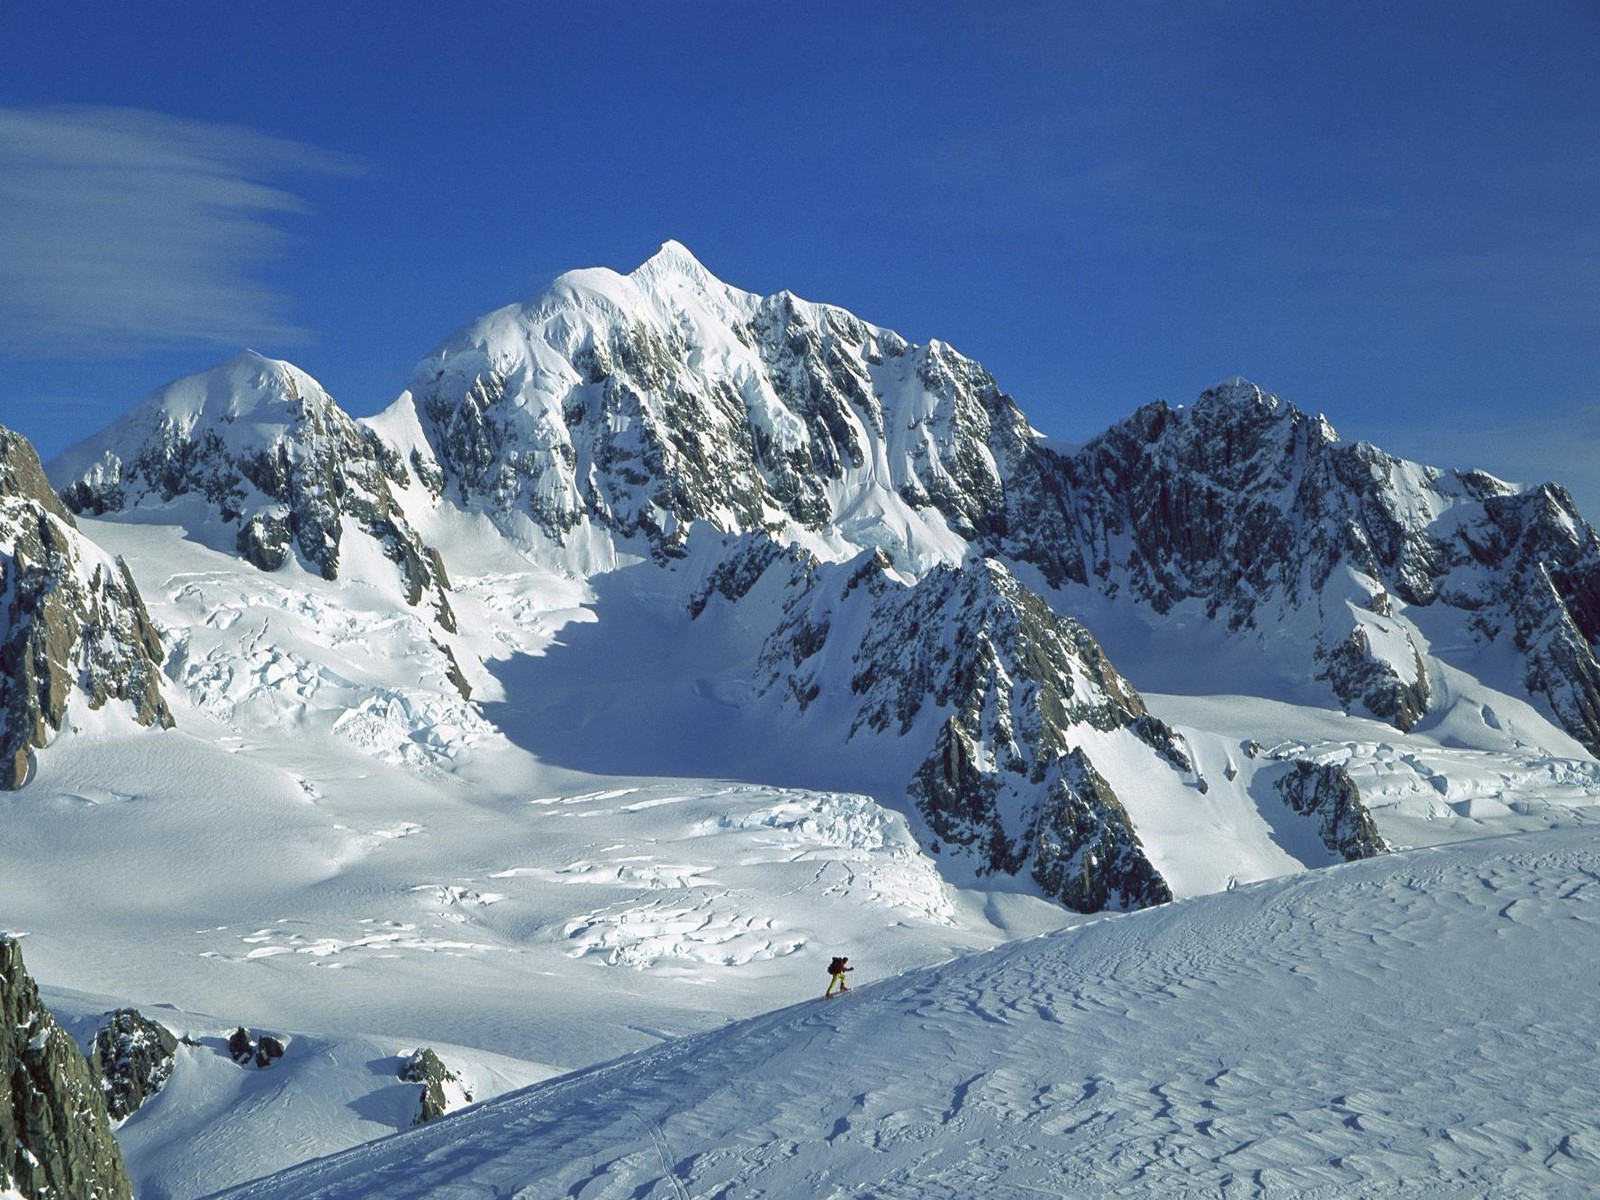 1600x1200 ski mountaineer desktop pc and mac wallpaper - Desktop wallpaper 1600x1200 ...